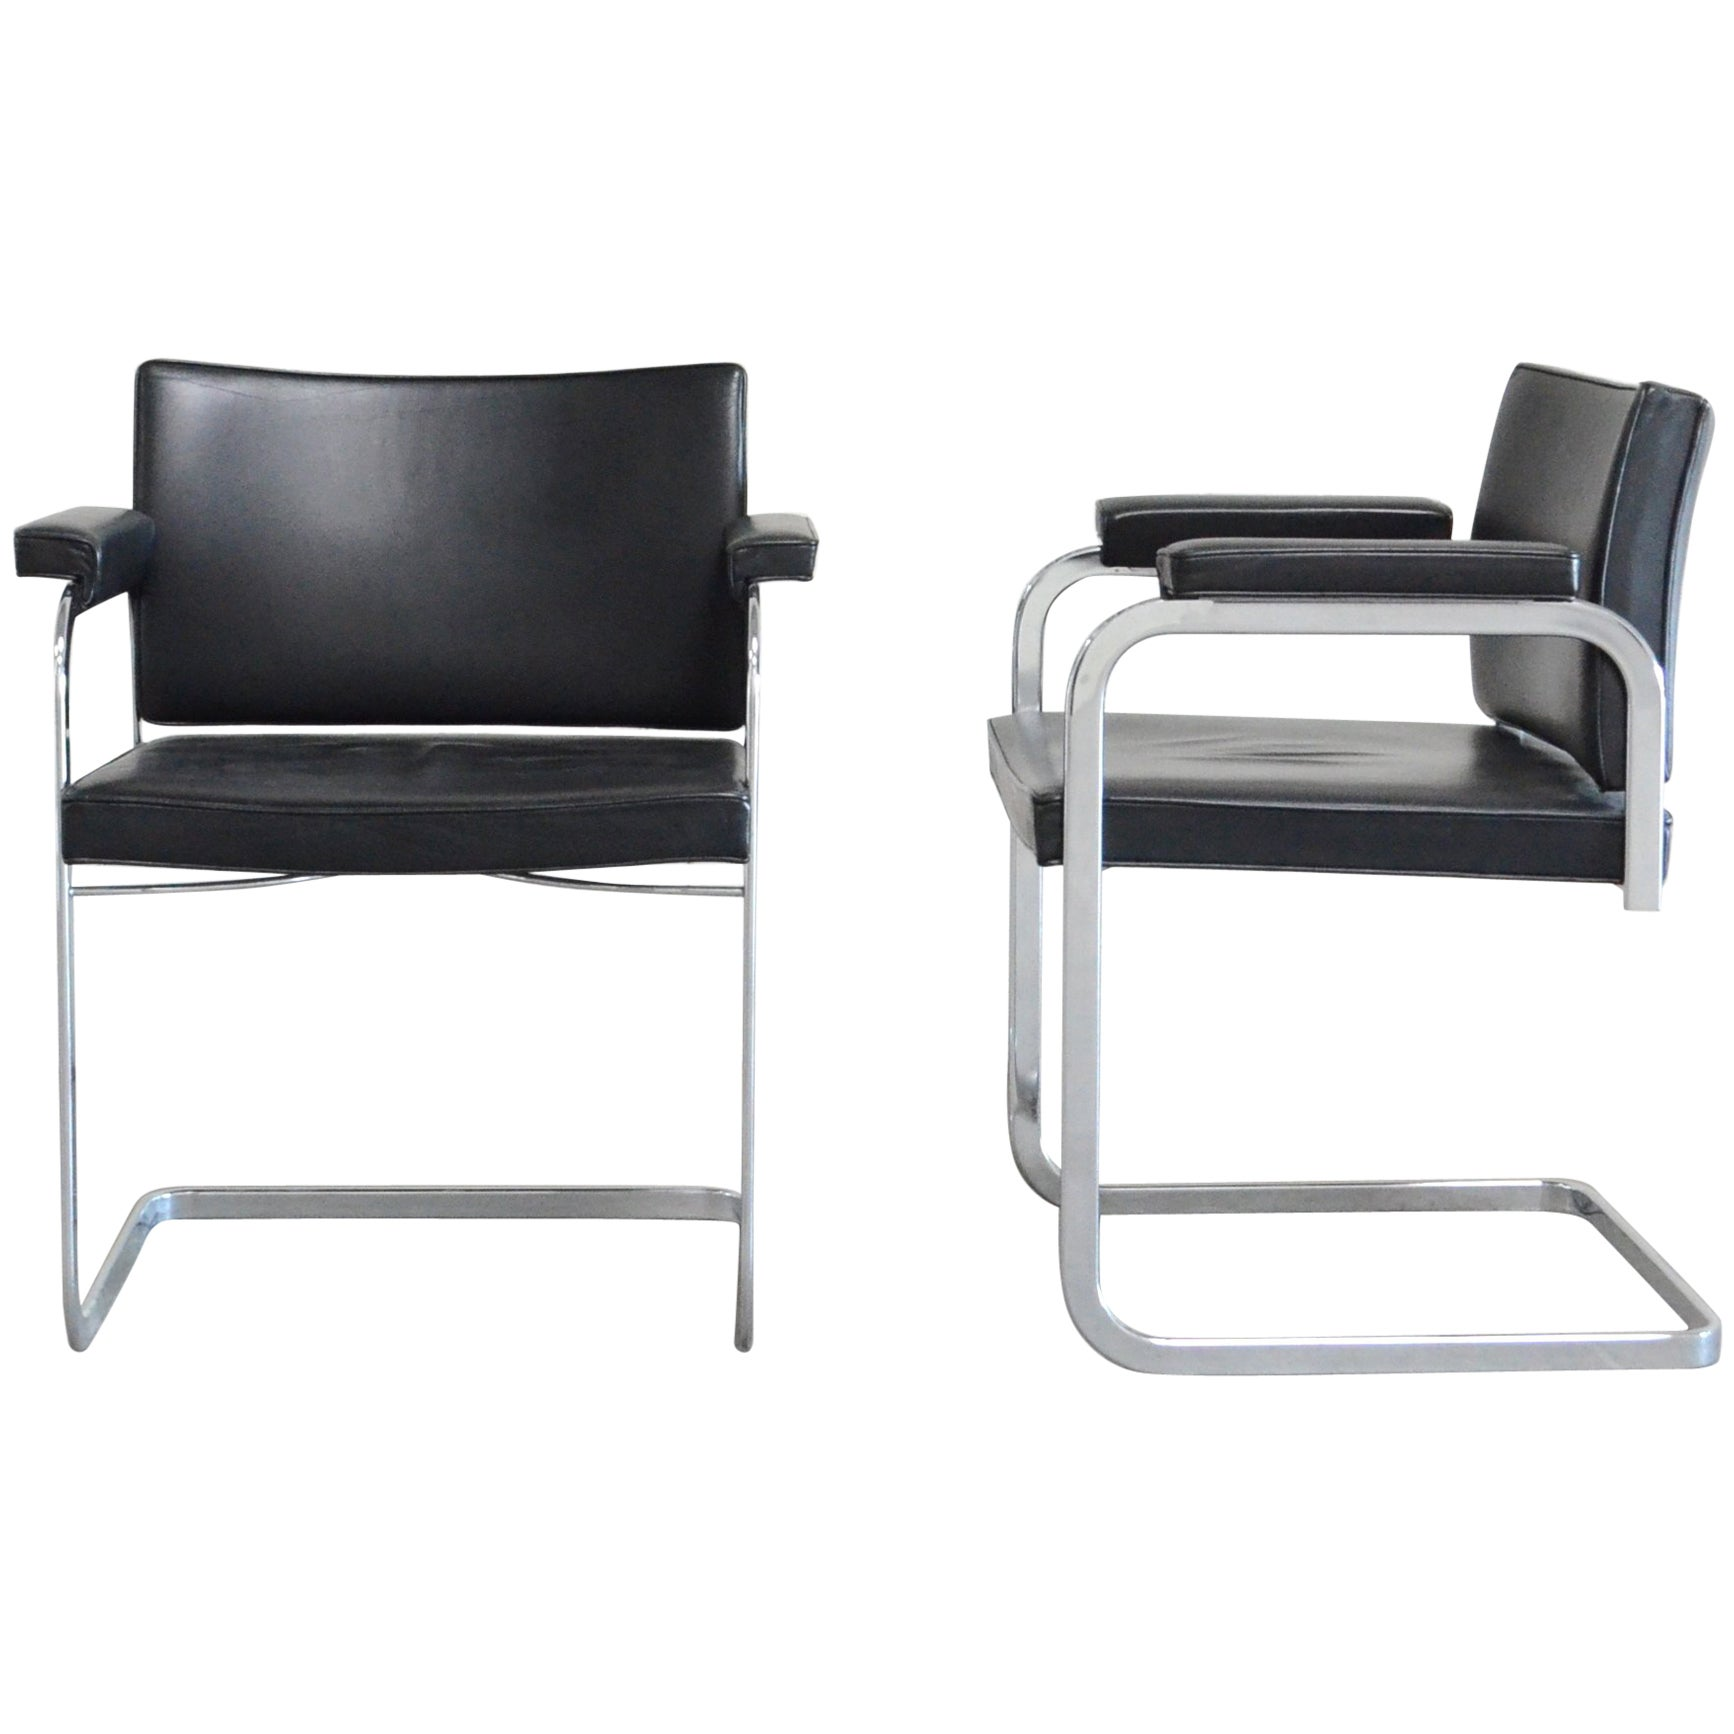 Robert Haussmann De Sede RH 305 Chair Black